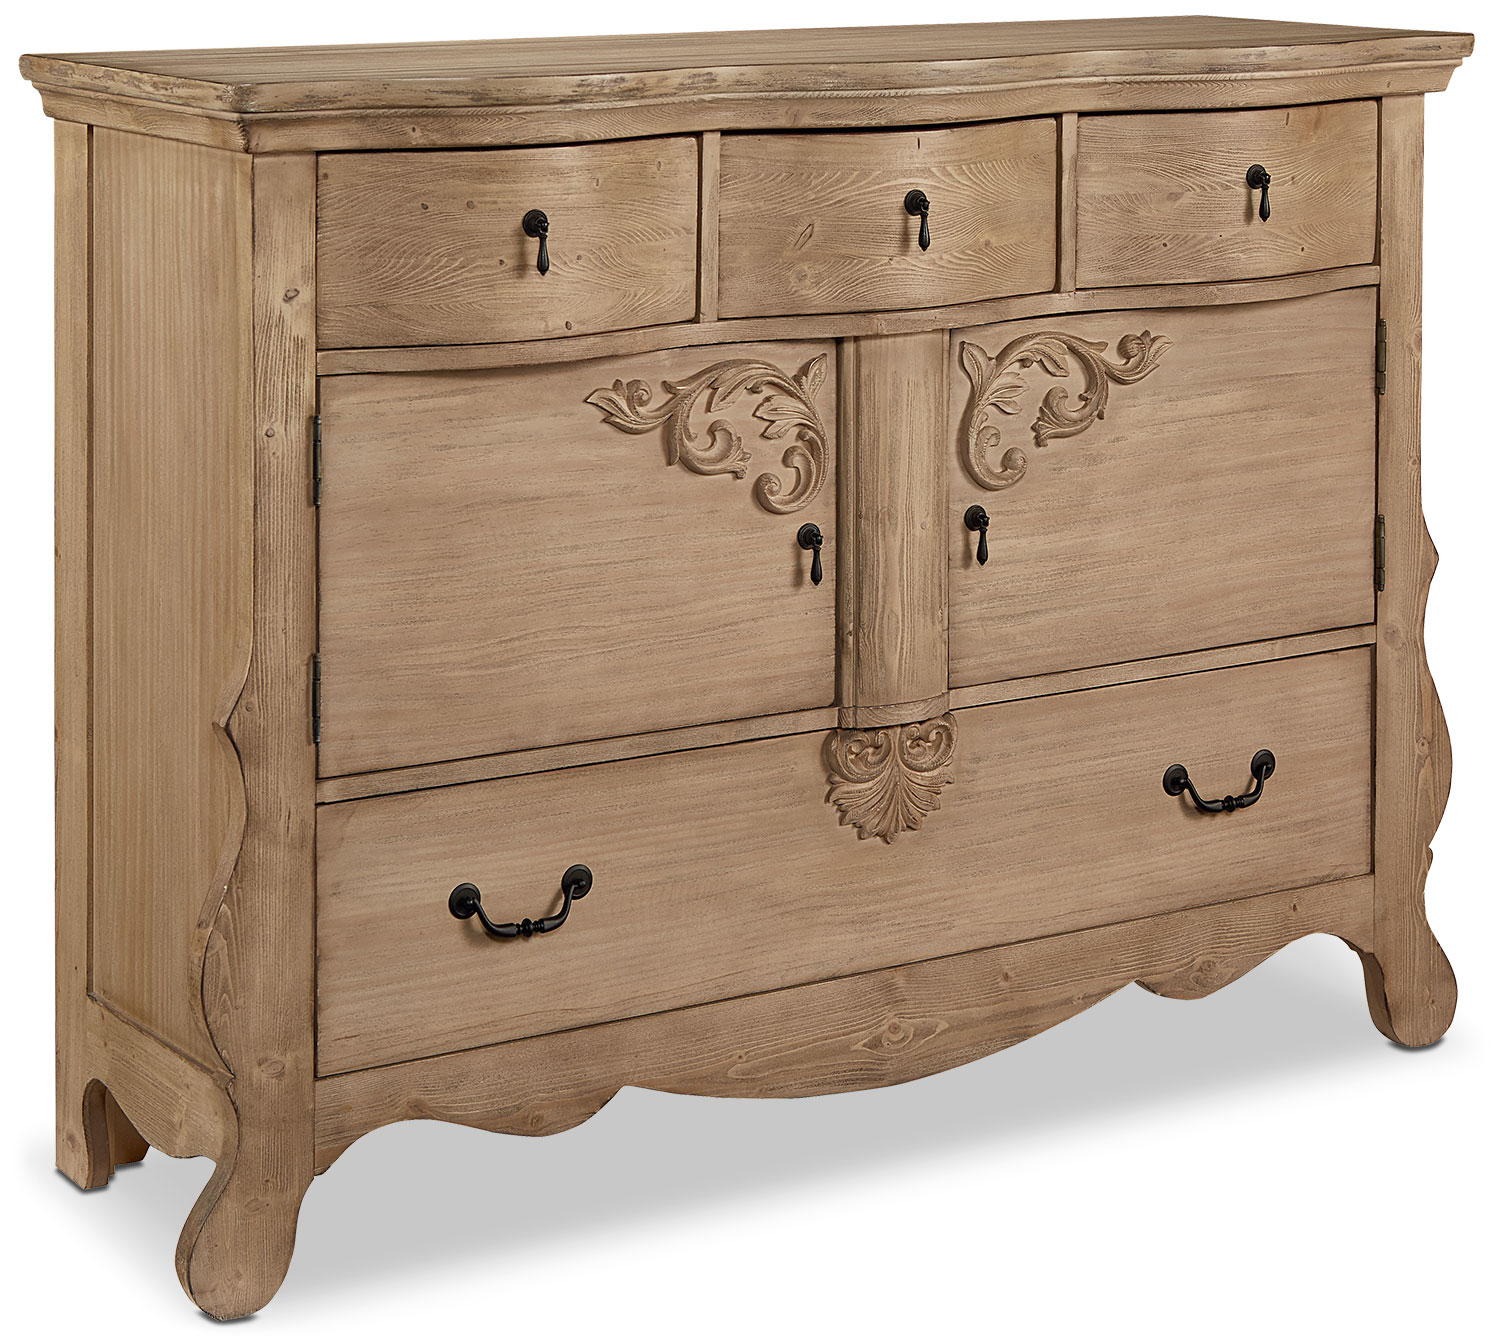 Accent and Occasional Furniture - Golden Era Sideboard Chest - Wheat